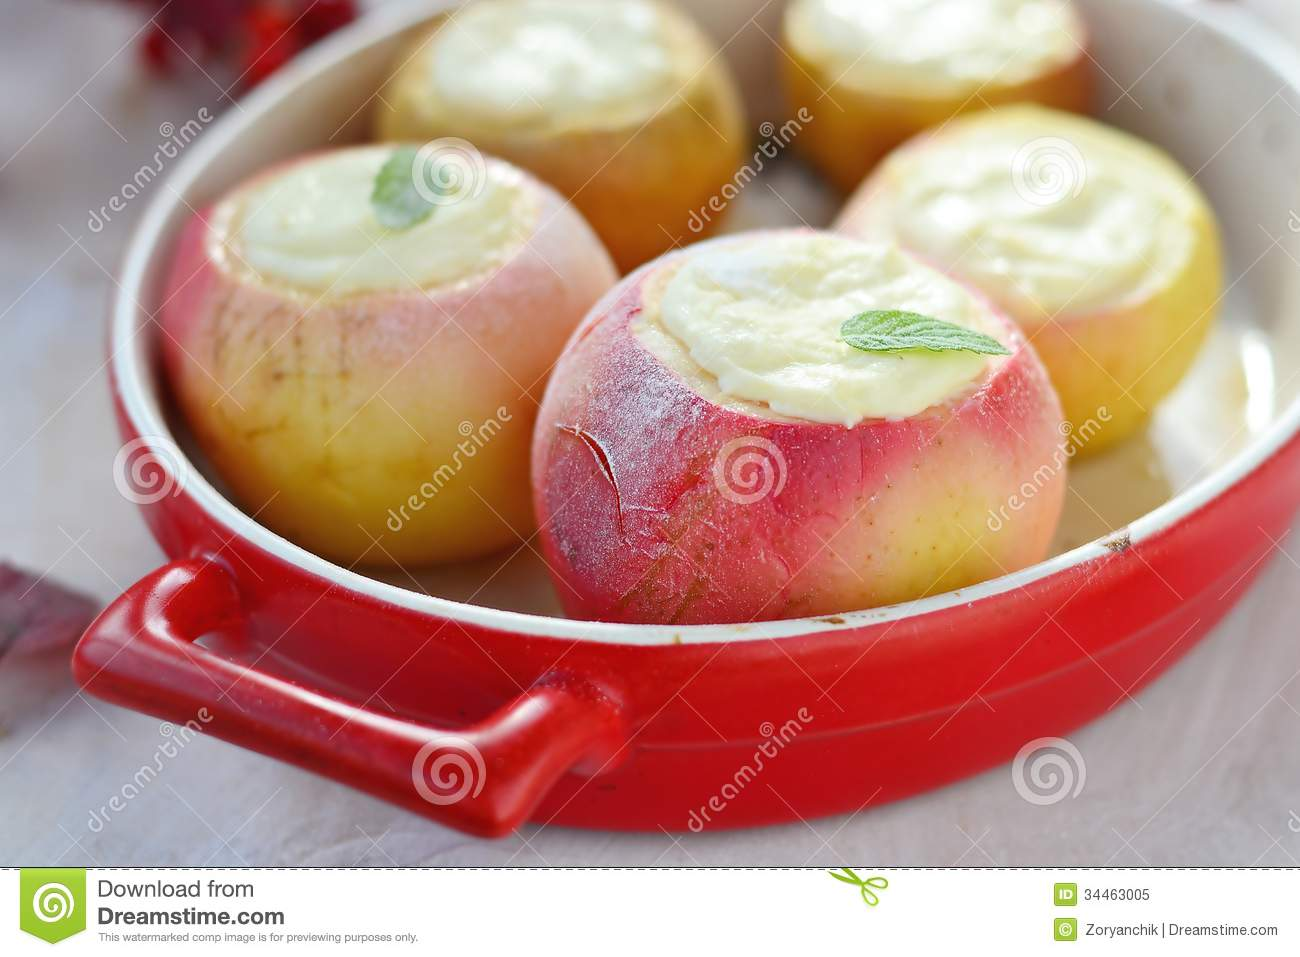 Baked apples with cottage cheese - a favorite dessert 68